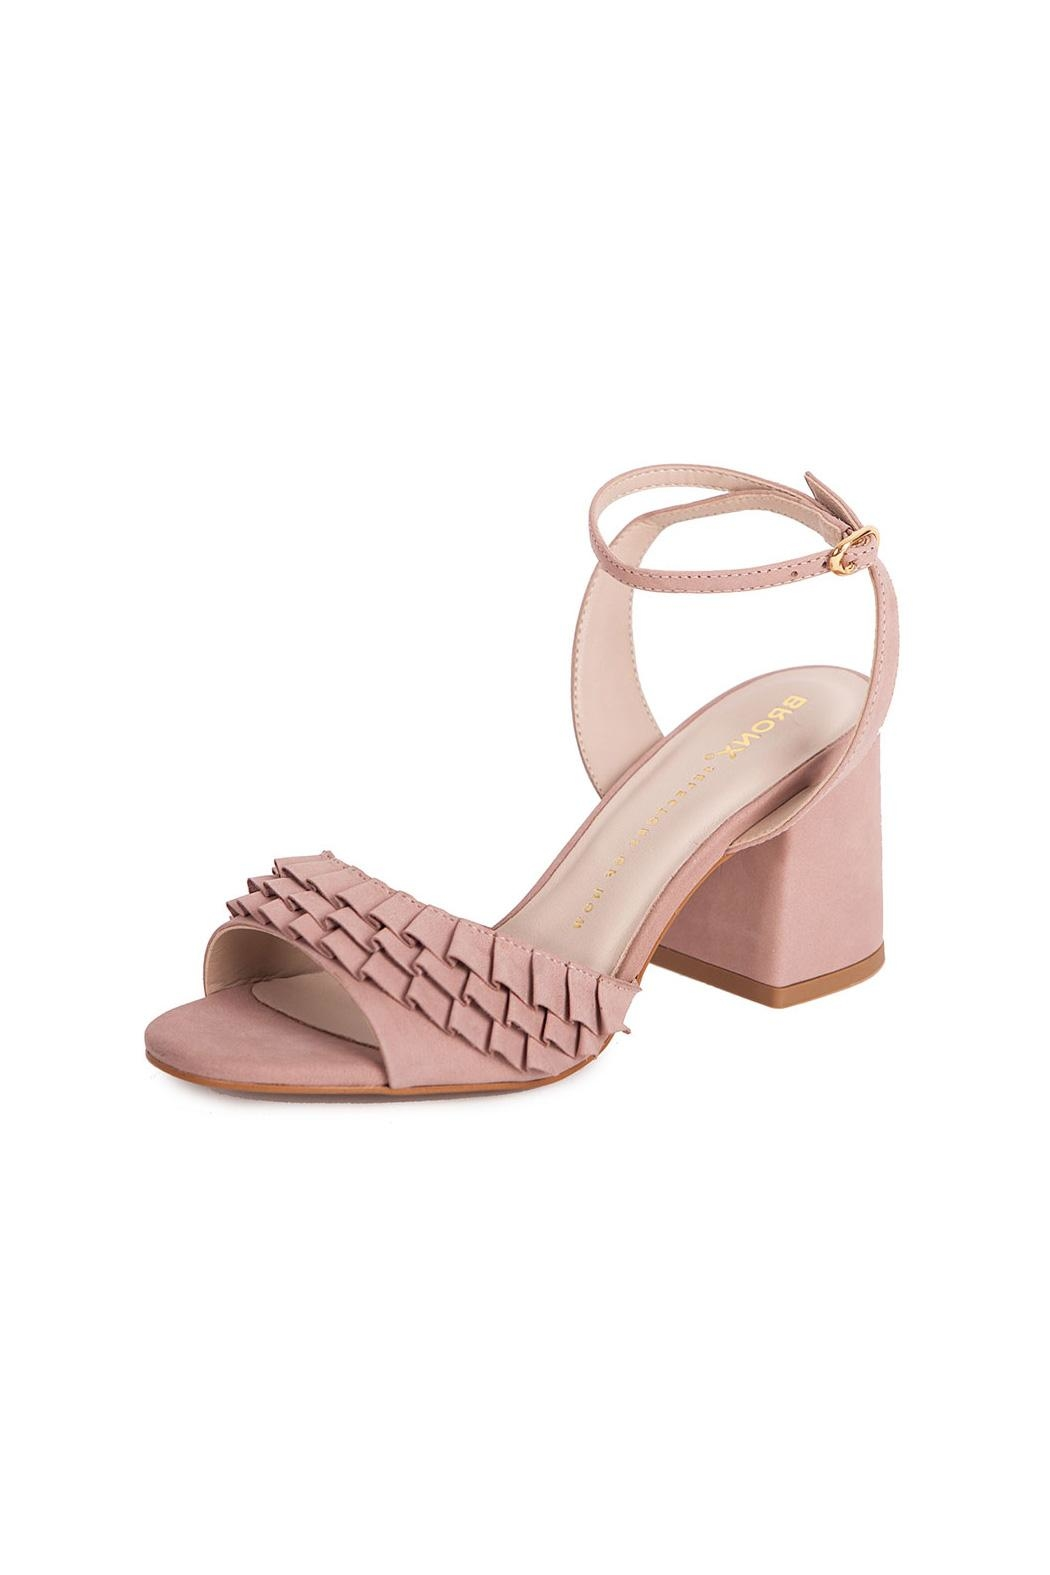 Bronx Pink Suede Heeled Sandals - Front Full Image